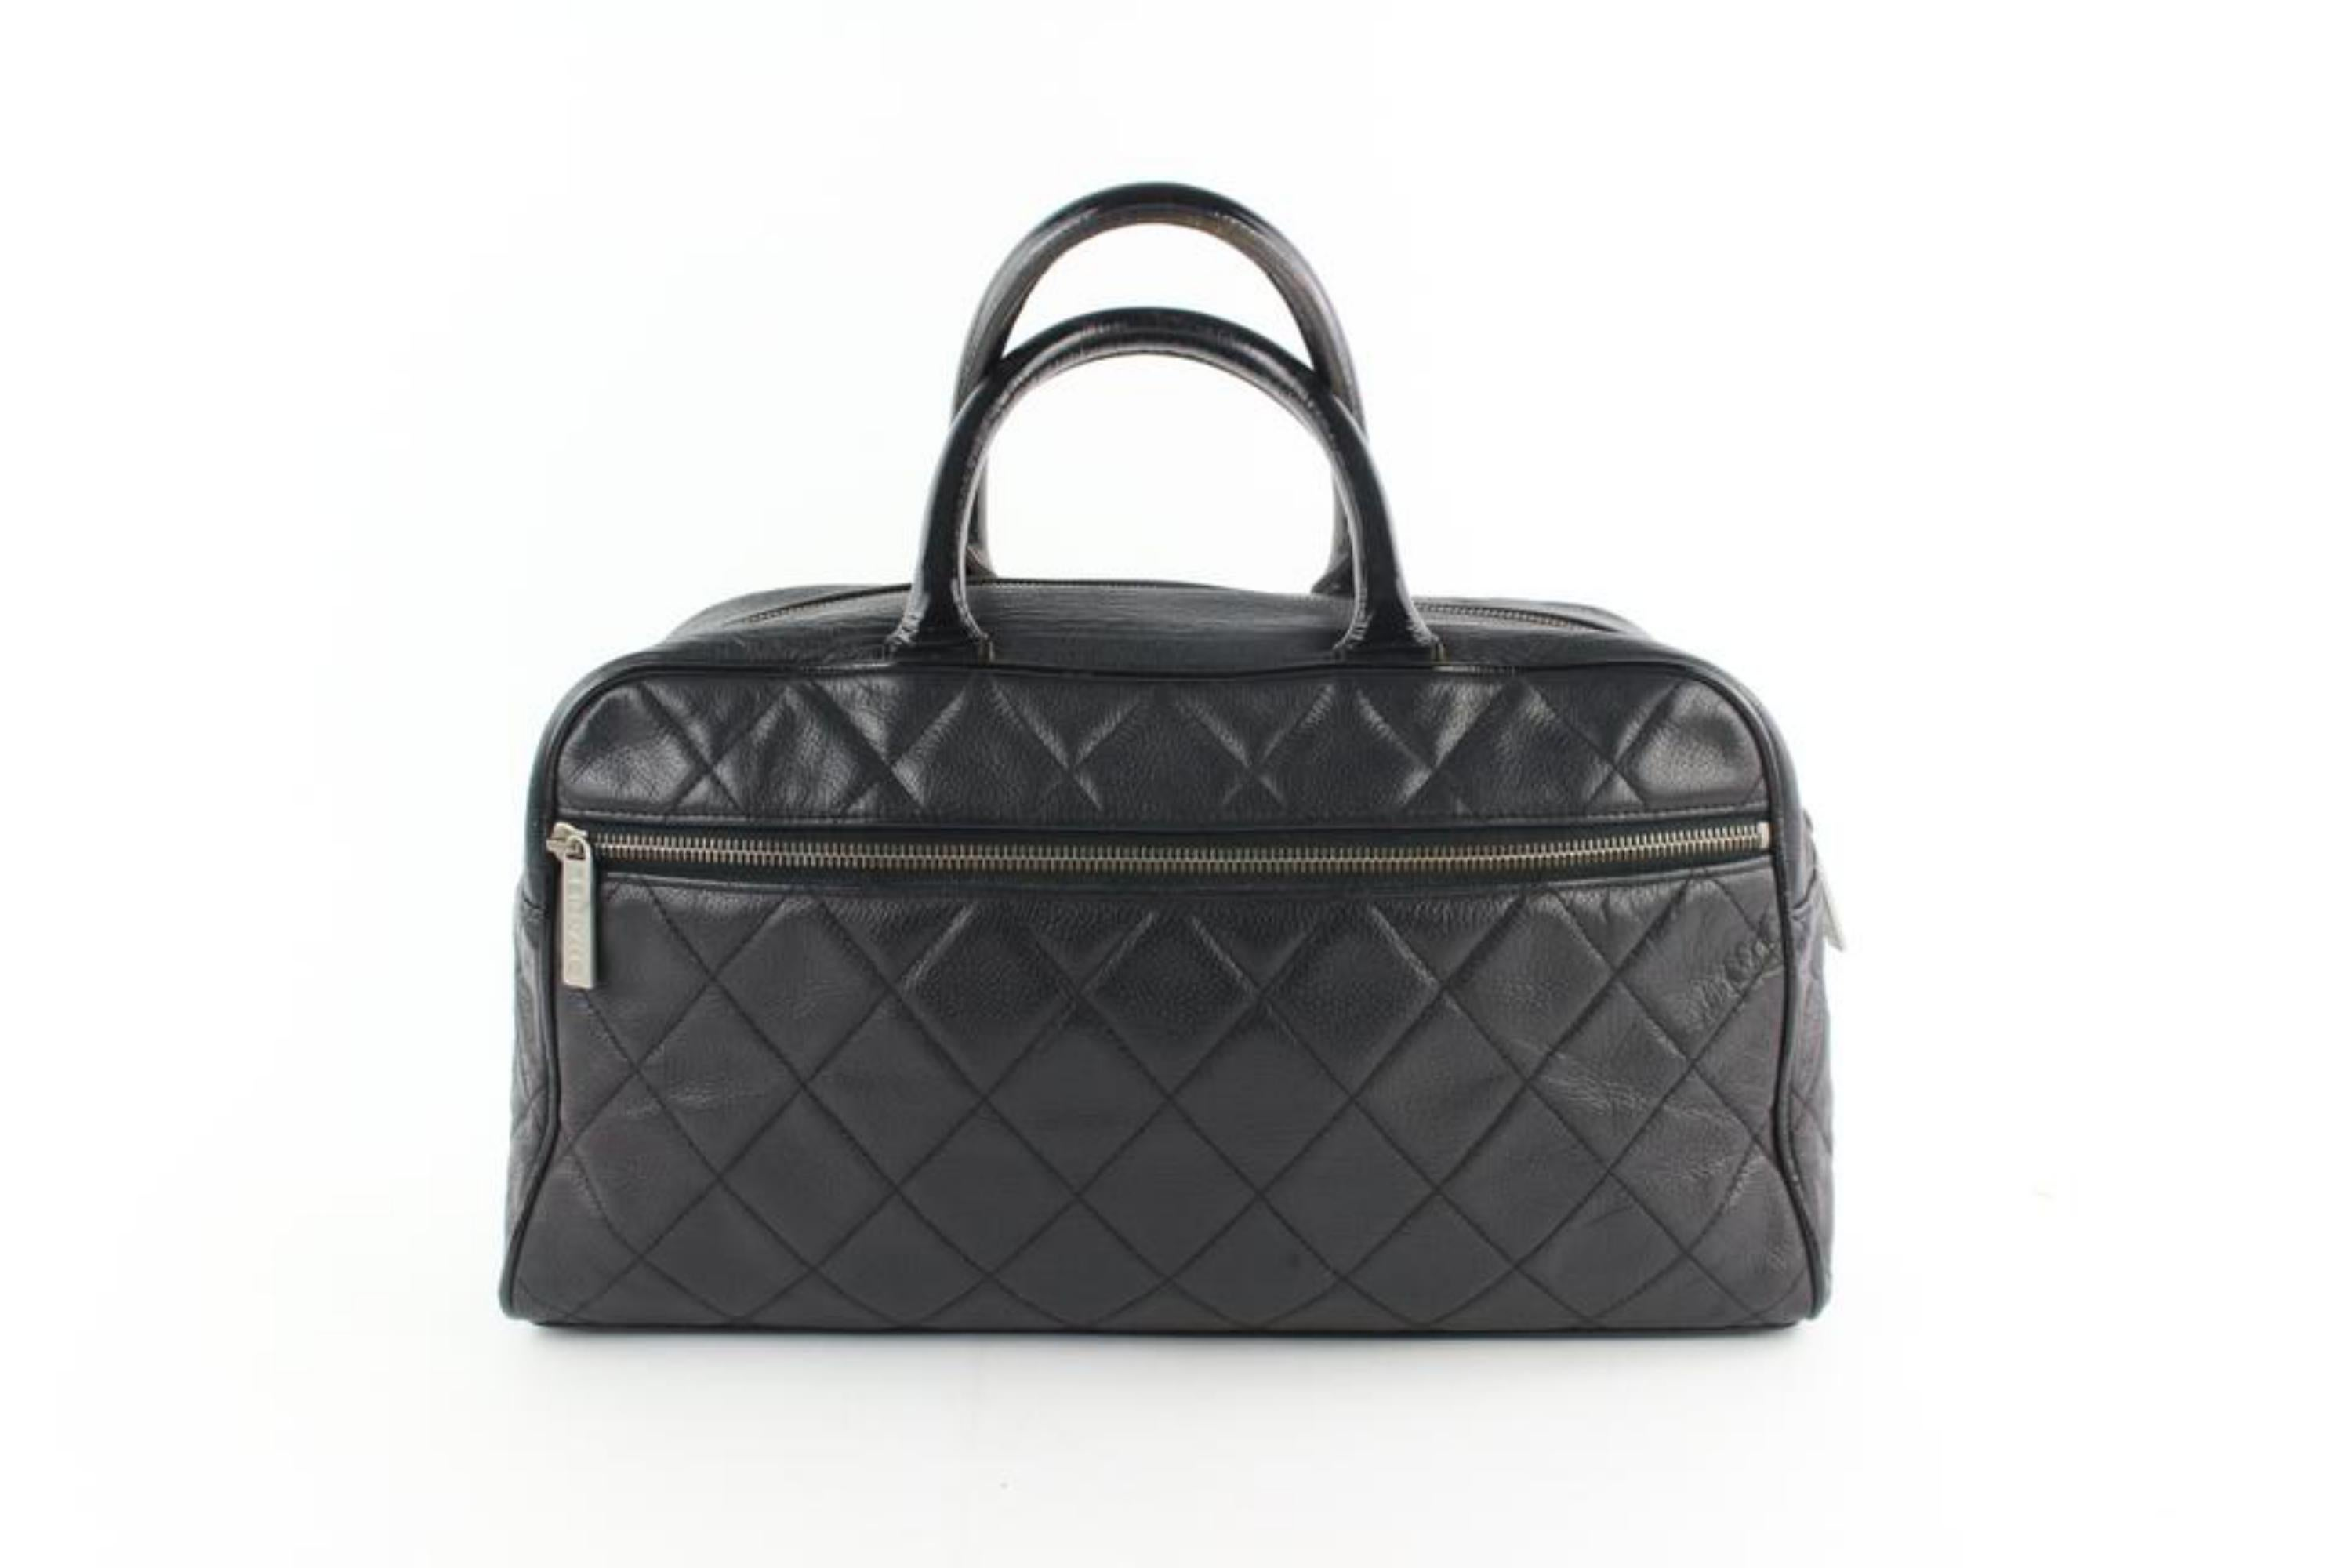 00fe724f92da Chanel Duffle Quilted Caviar Jumbo Boston 224146 Black Leather Weekend/ TravelBag For Sale at 1stdibs